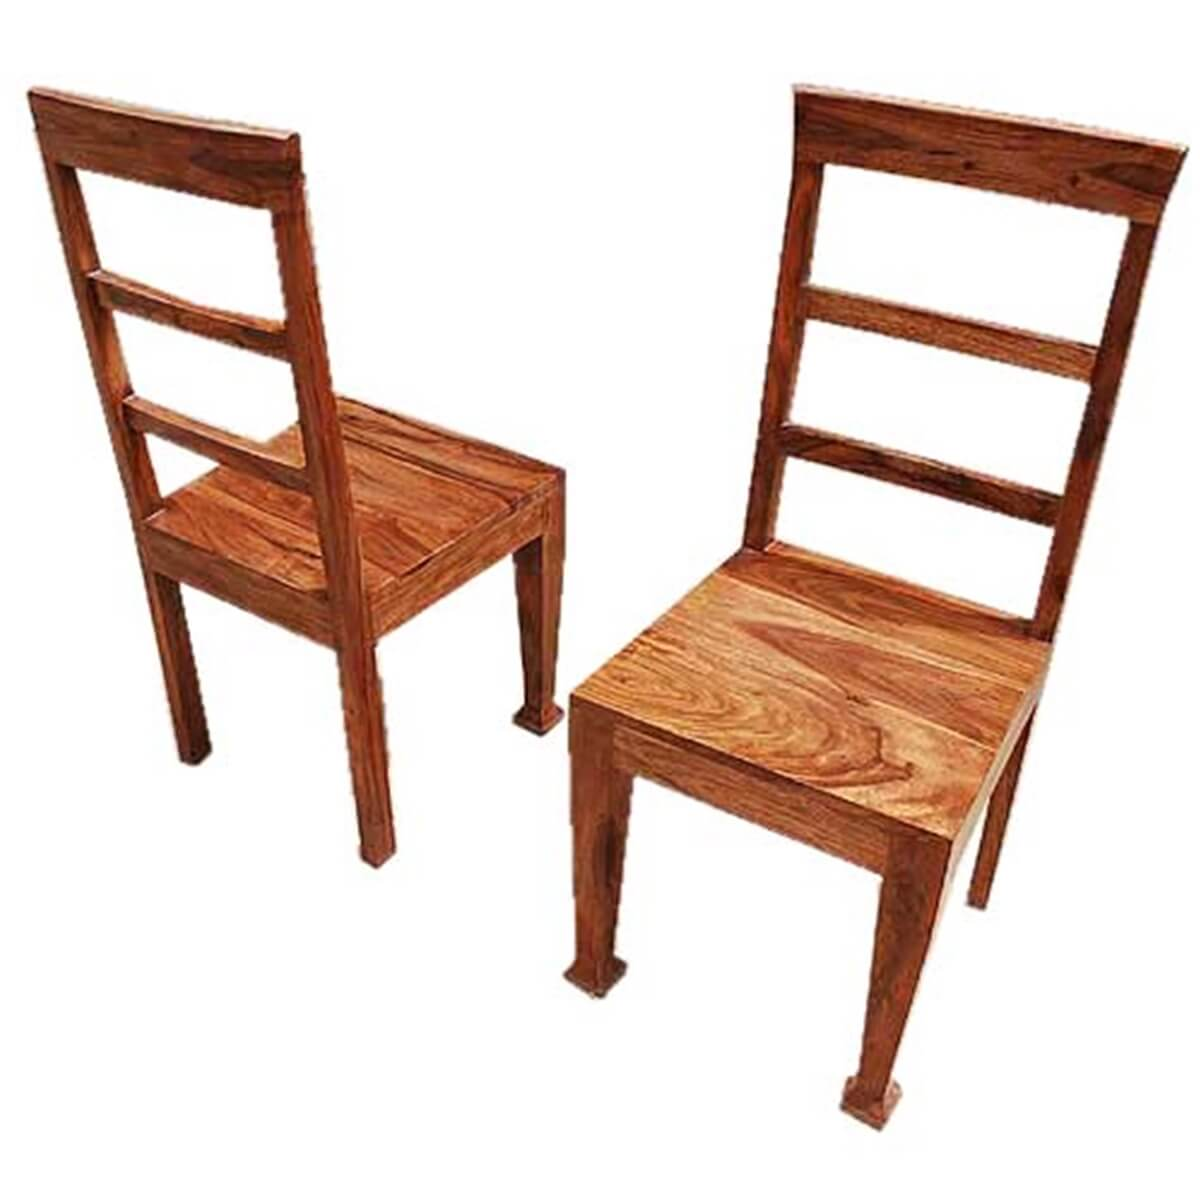 Rustic Dining Chairs Rustic Furniture Solid Wood Dining Table And Chair Set